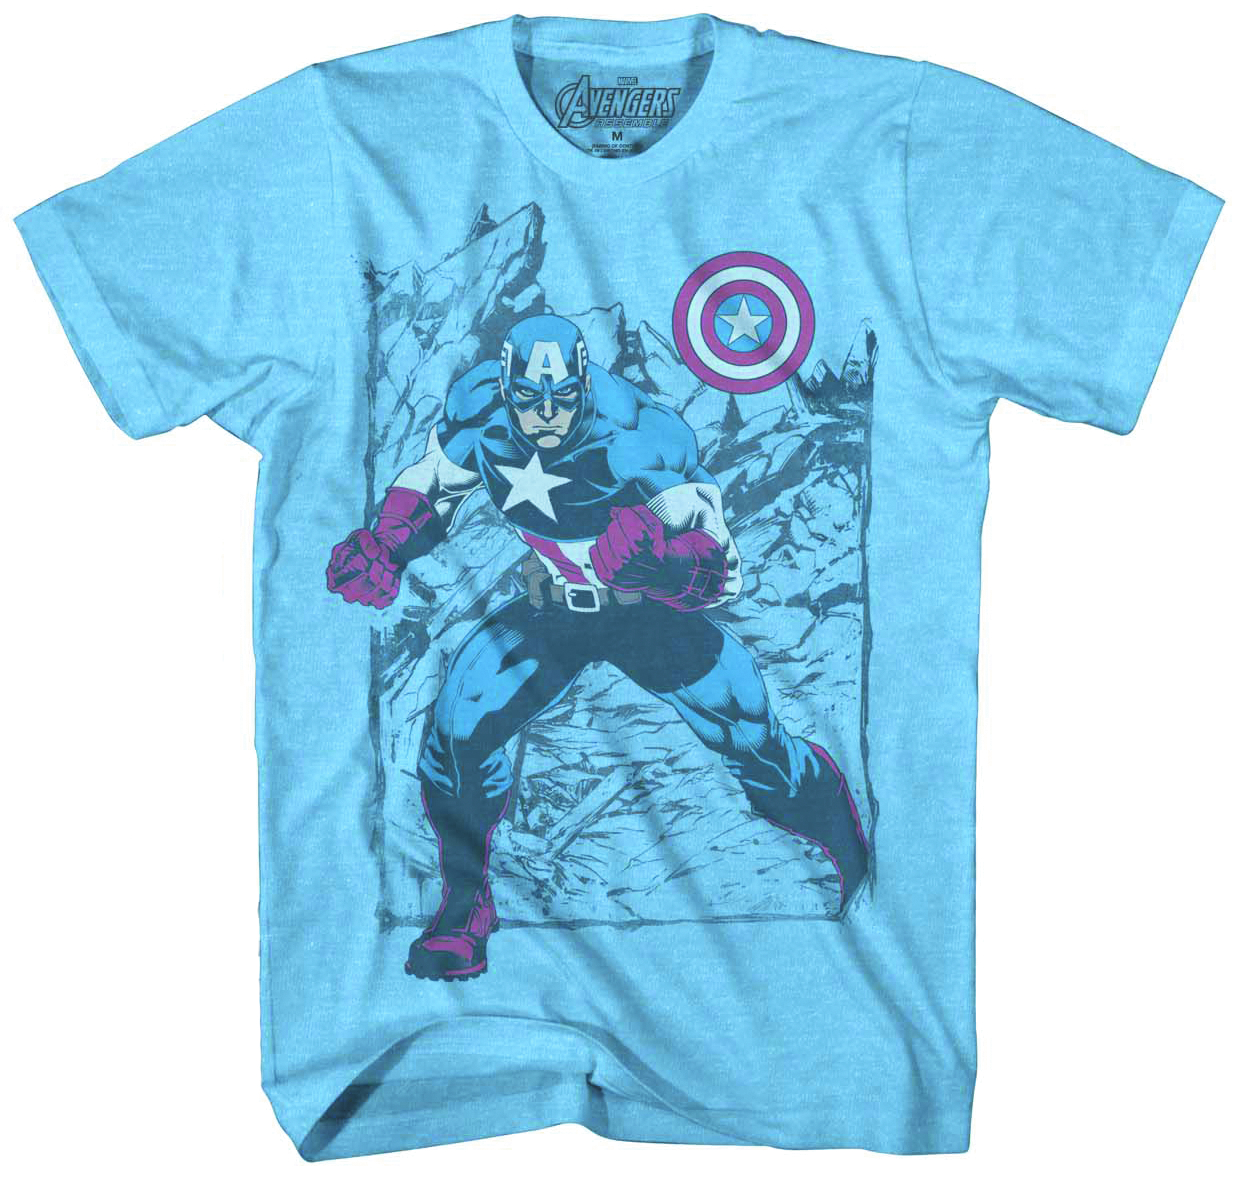 CAPTAIN AMERICA FADED GLORY PX BLUE T/S LG